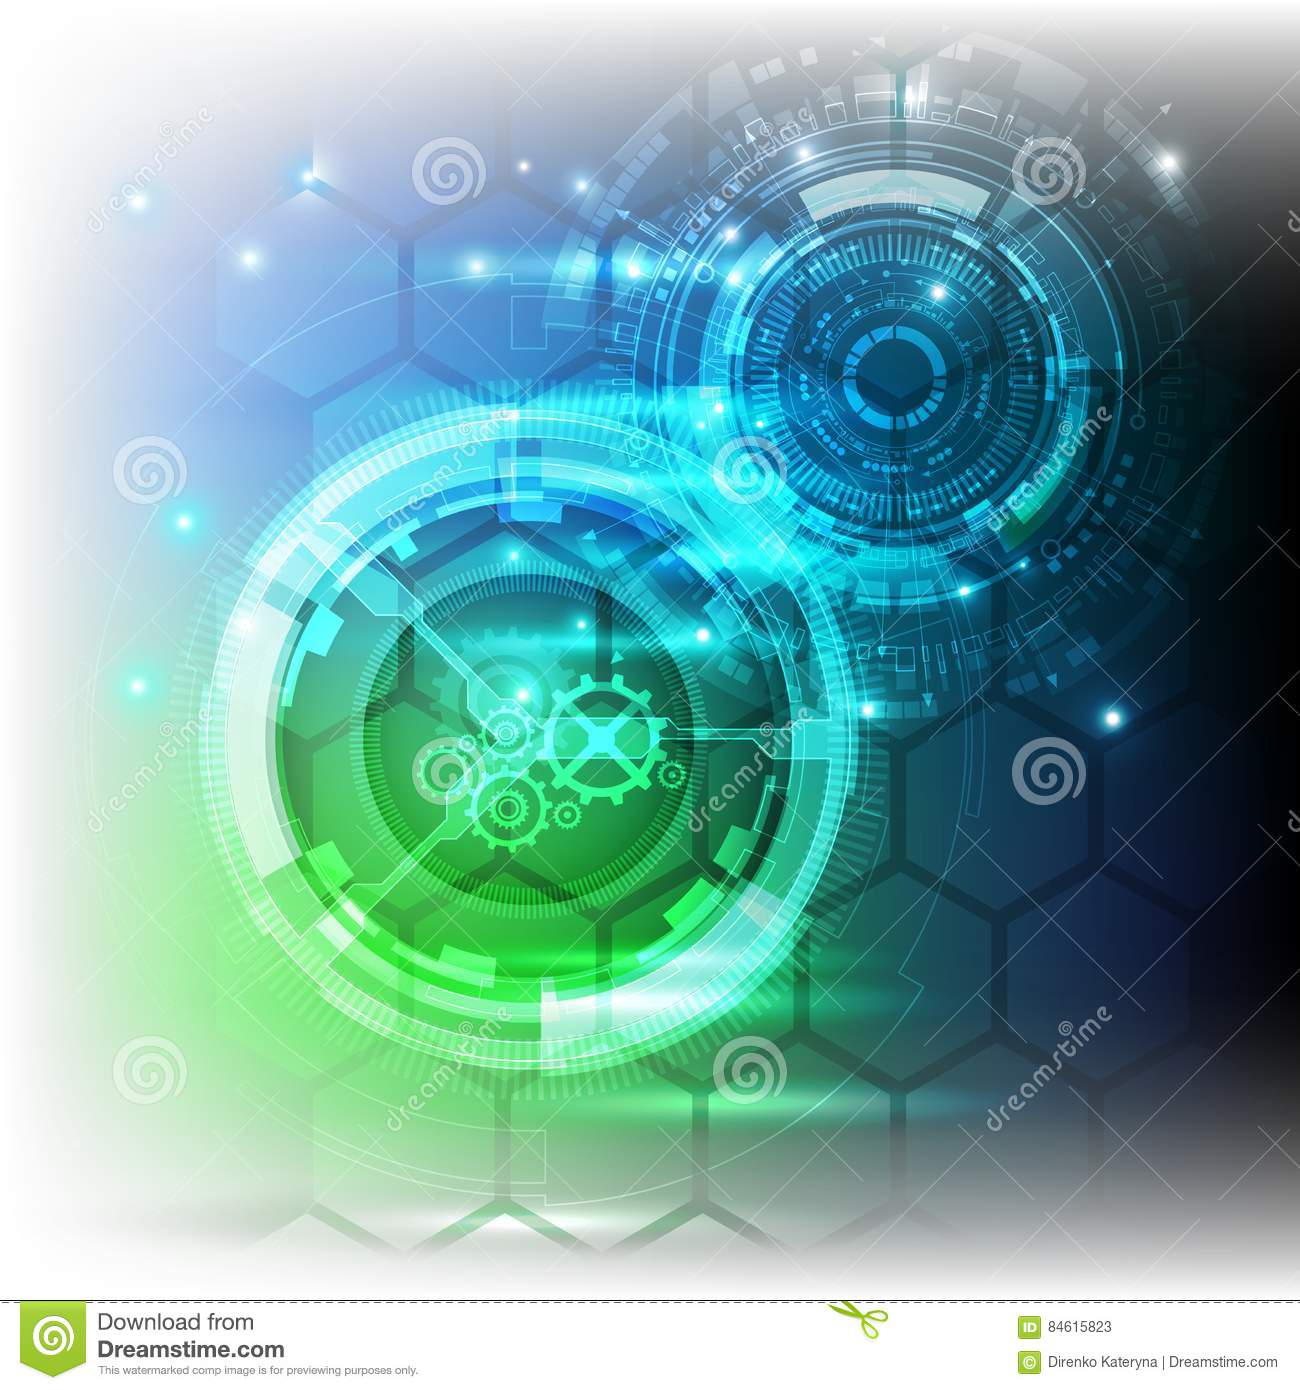 New future technology concept abstract background for business solution